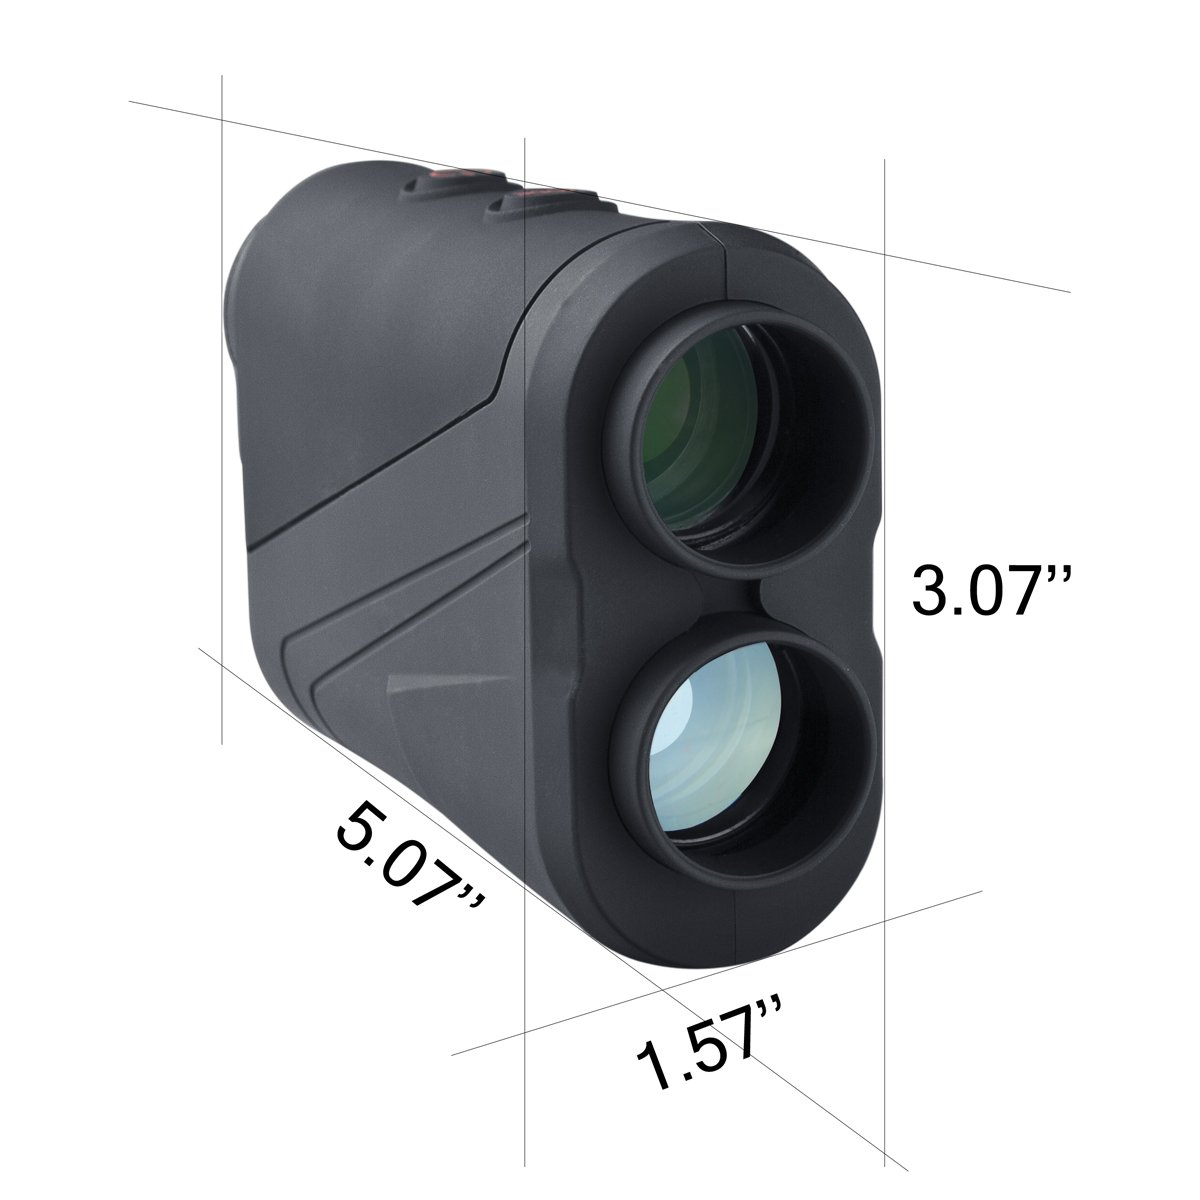 AZOT CS-600 Golf rangefinder Laser Range Finder with waterproof function Measure ranging and speed Free Battery by AZOT (Image #5)